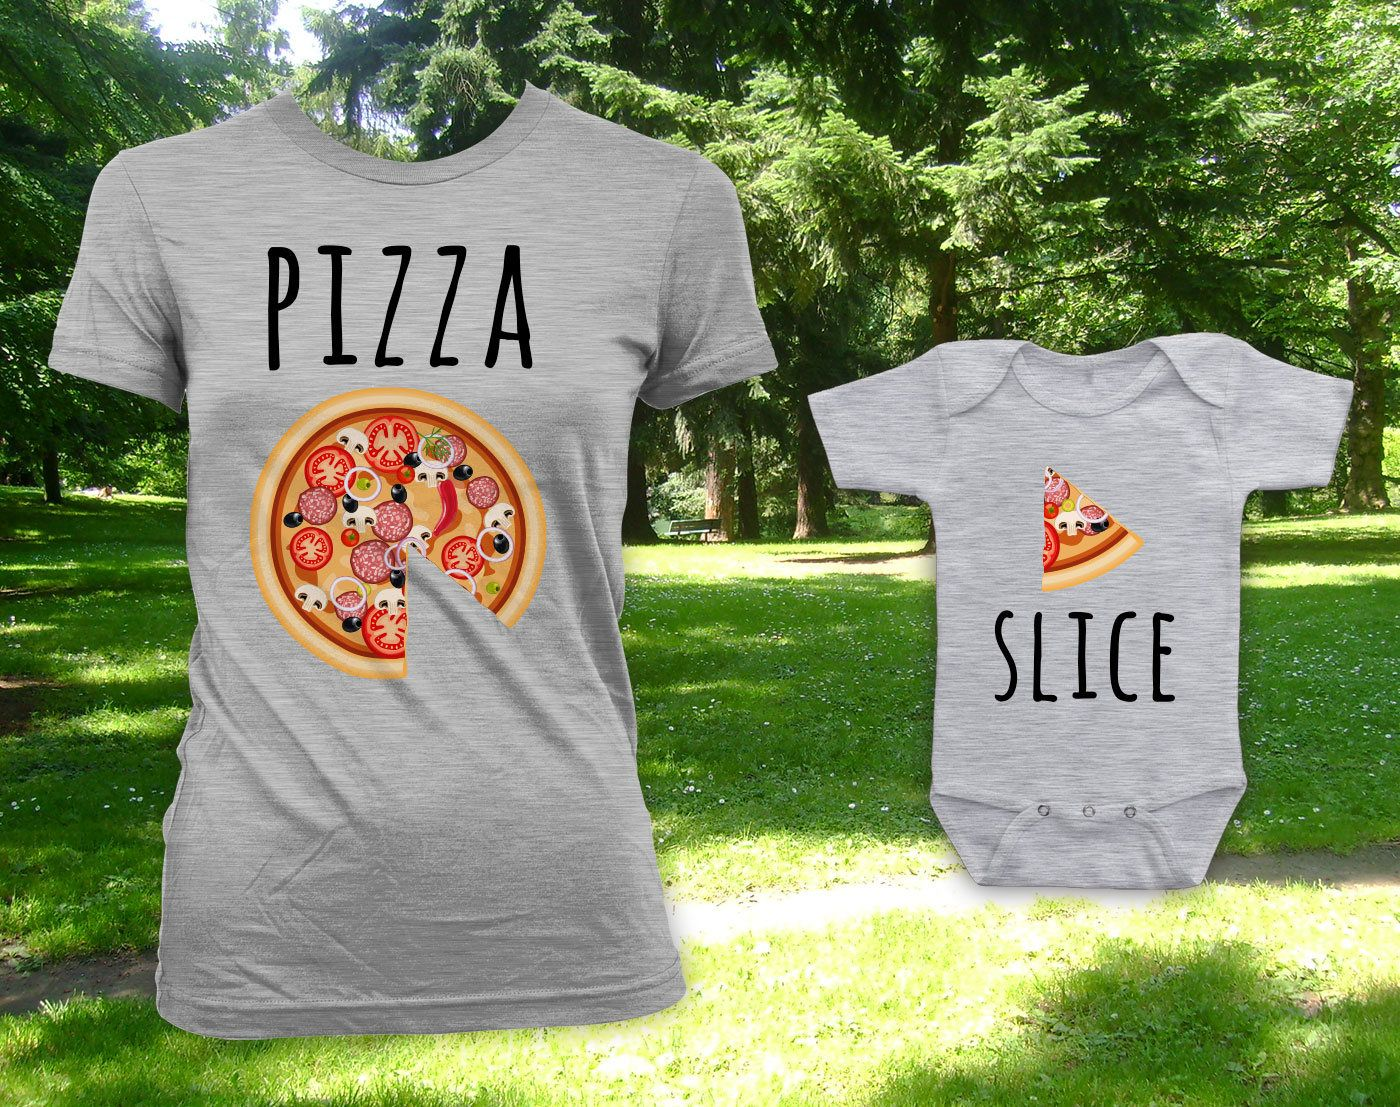 7657d9e65 Pizza - Slice father son daughter matching shirts, father's day gift, gift  for dad, matching t-shirts, etsy tshirt, bodysuit - CCB-619-620 by ...